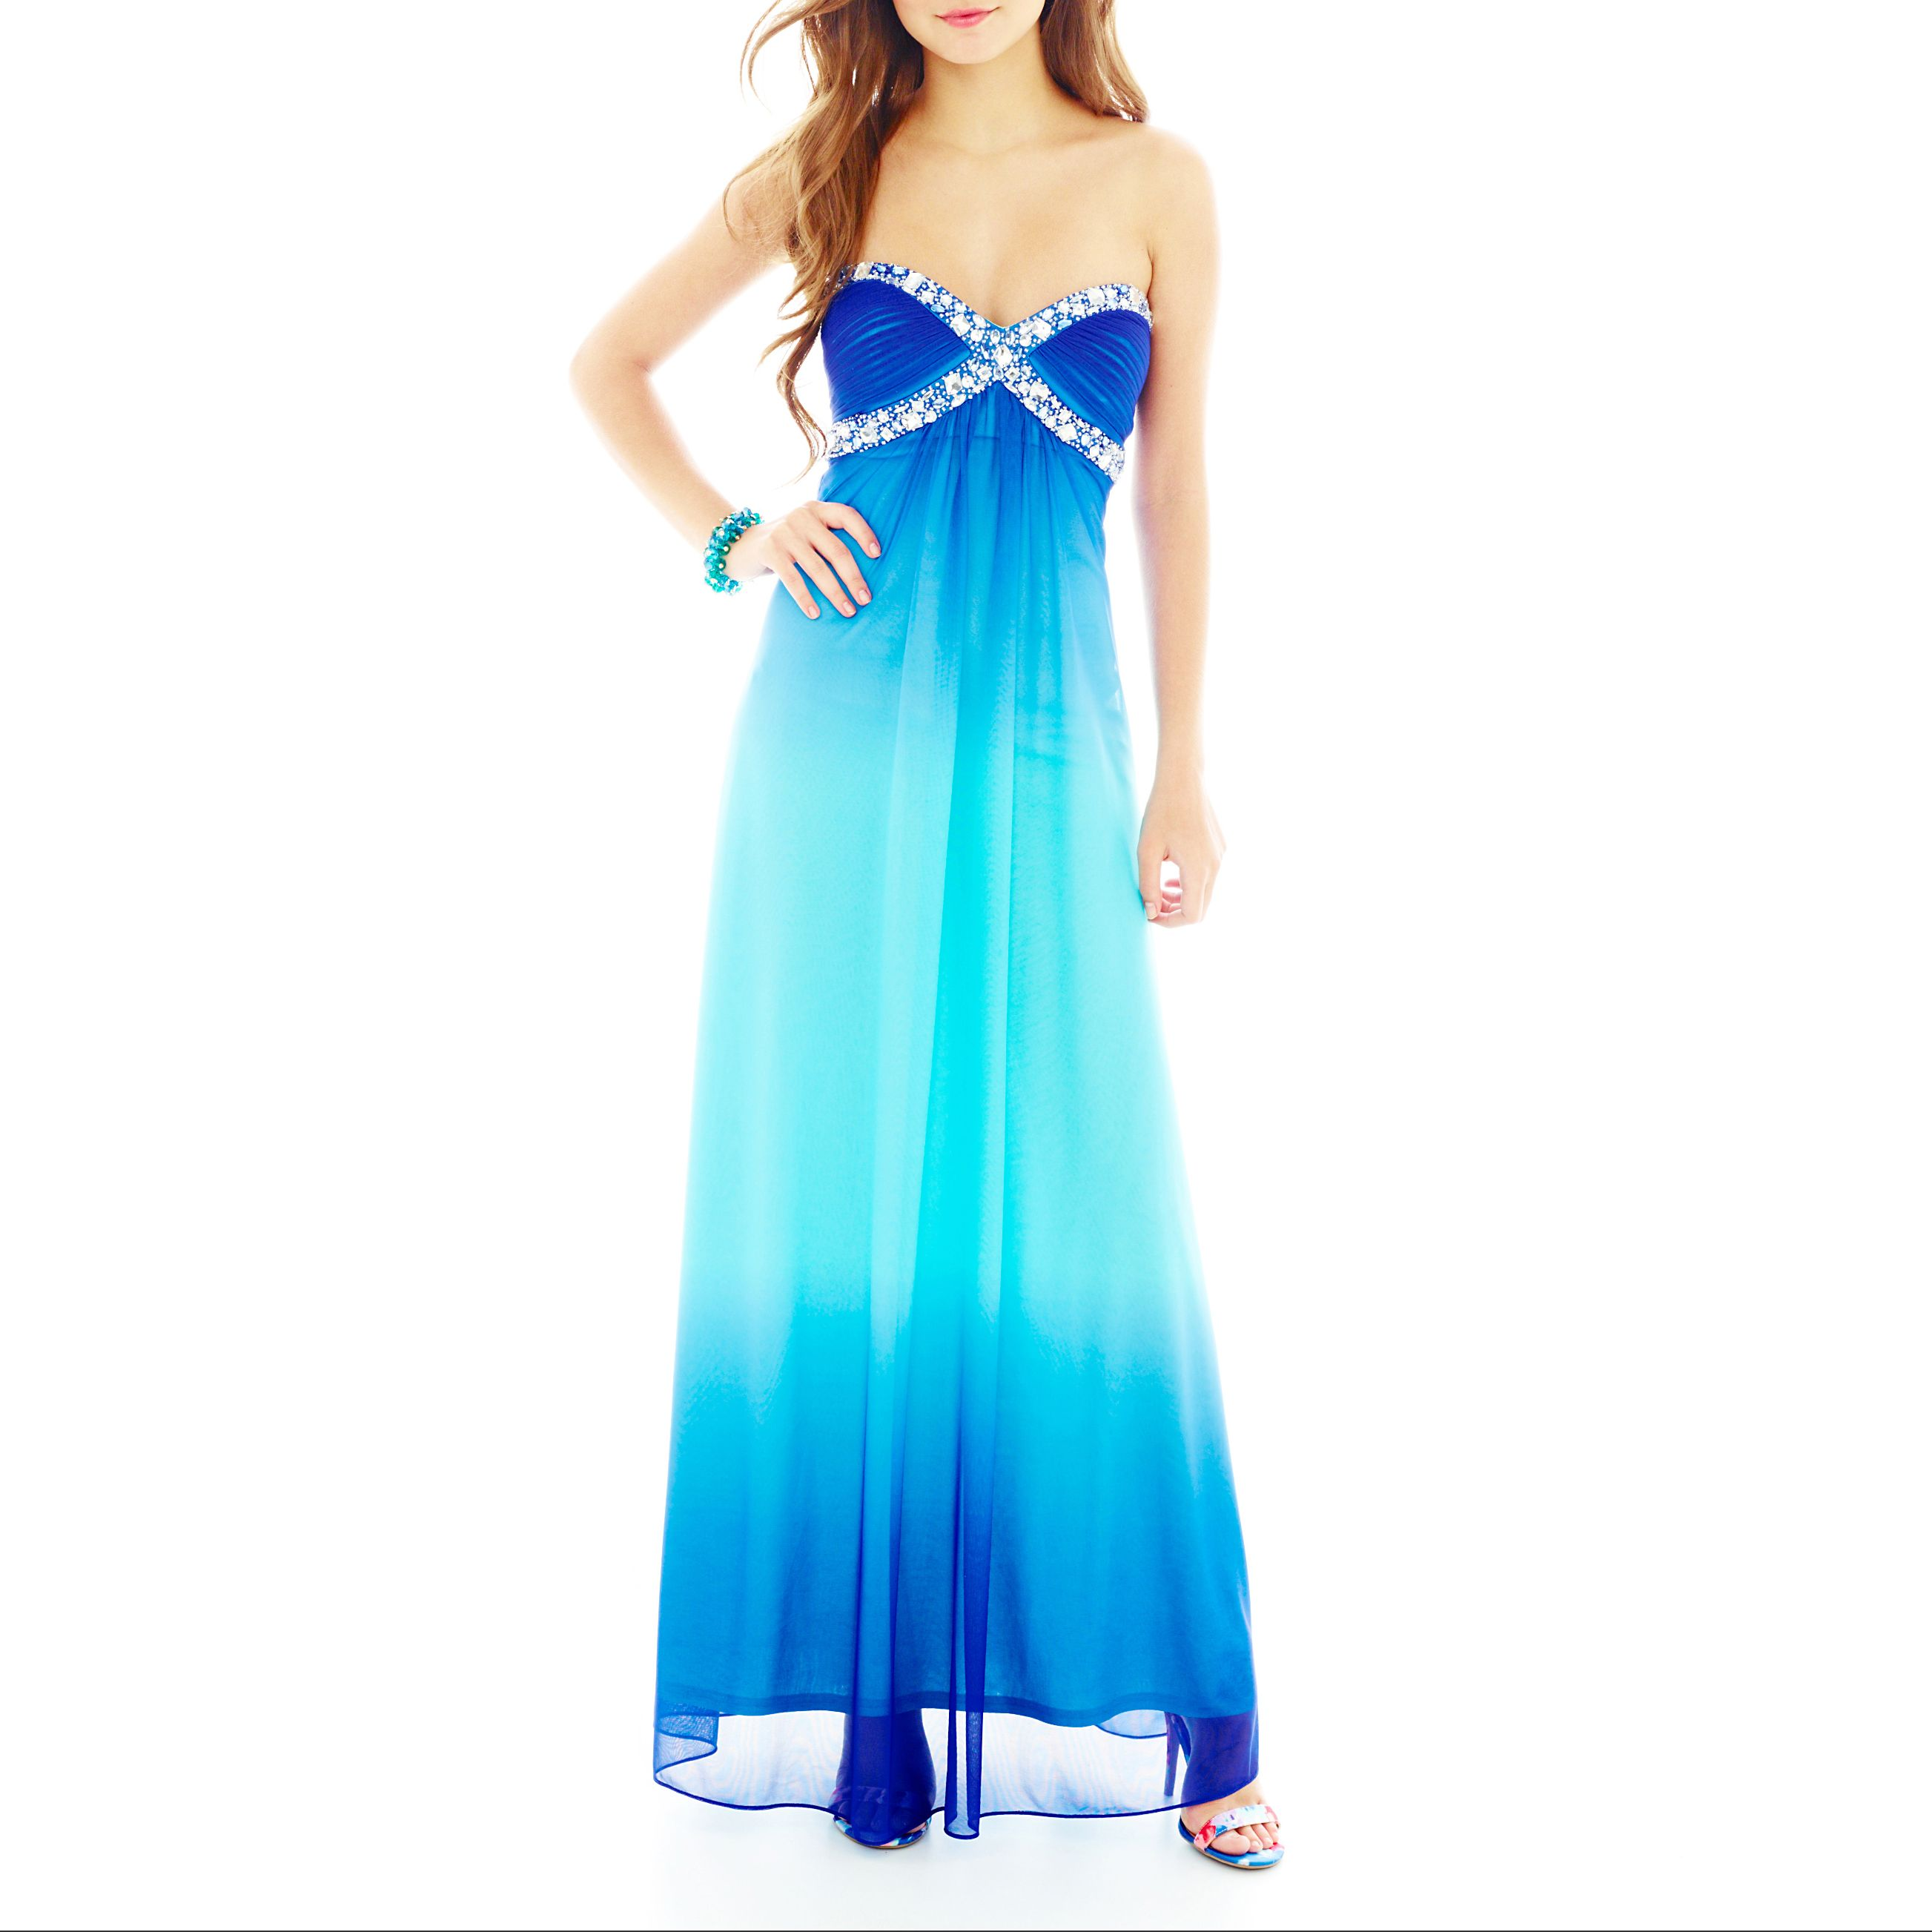 Onyx Long Slim Dress Sweetheart Ombre with Bead Trim - JCPenney ...